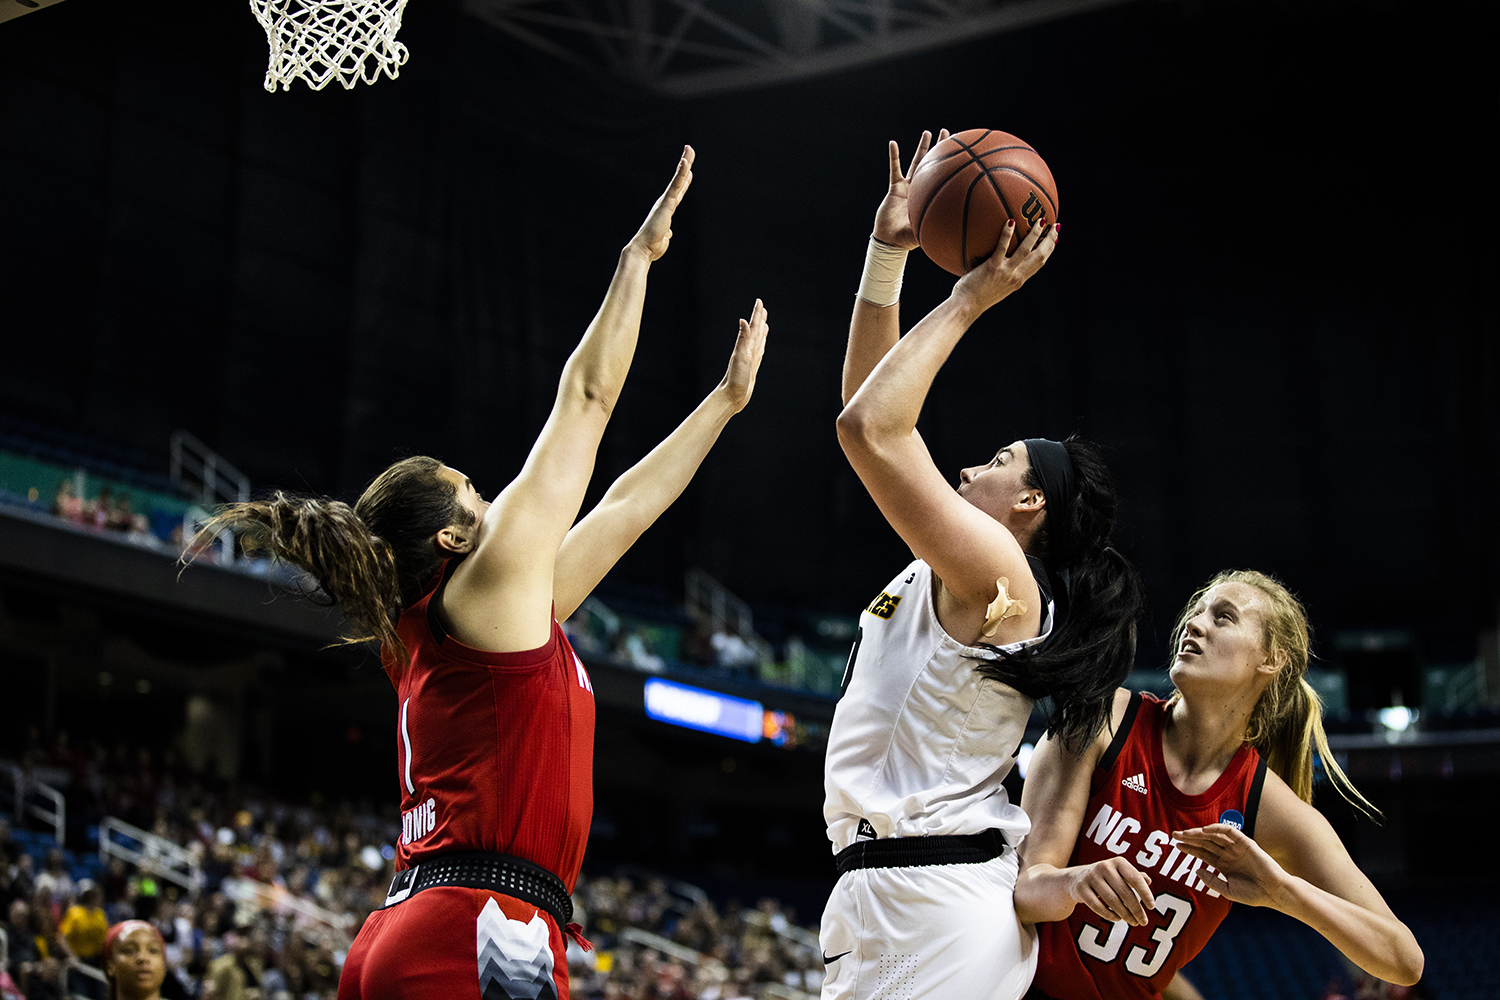 Iowa center Megan Gustafson shoots the ball during the NCAA Sweet 16 game against NC State at the Greensboro Coliseum Complex on Saturday, March 30, 2019. The Hawkeyes defeated the Wolfpack 79-61.